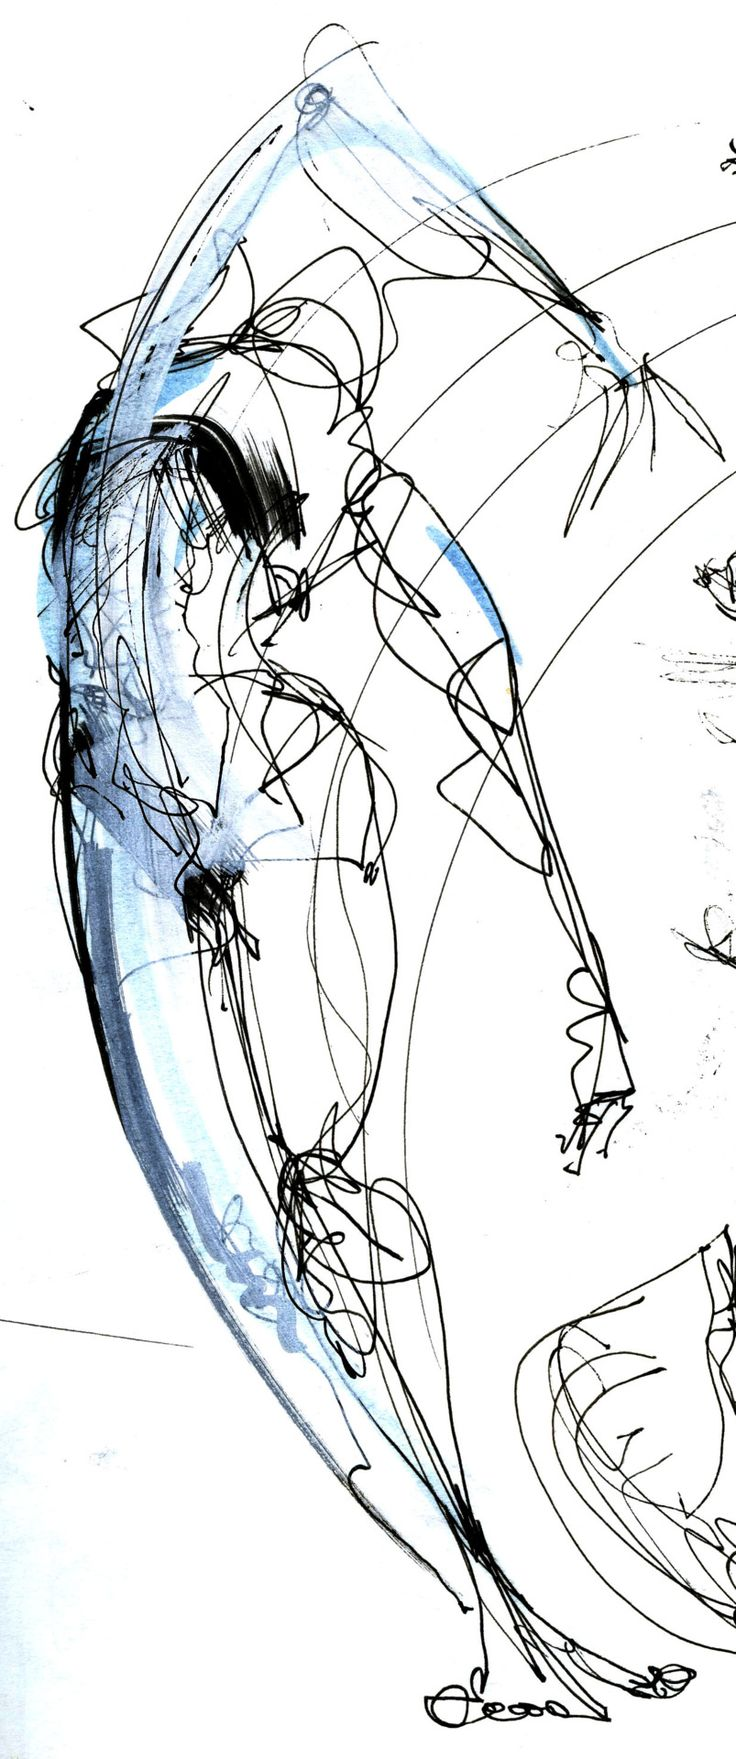 Famous Gesture Drawings | www.imgkid.com - The Image Kid ...